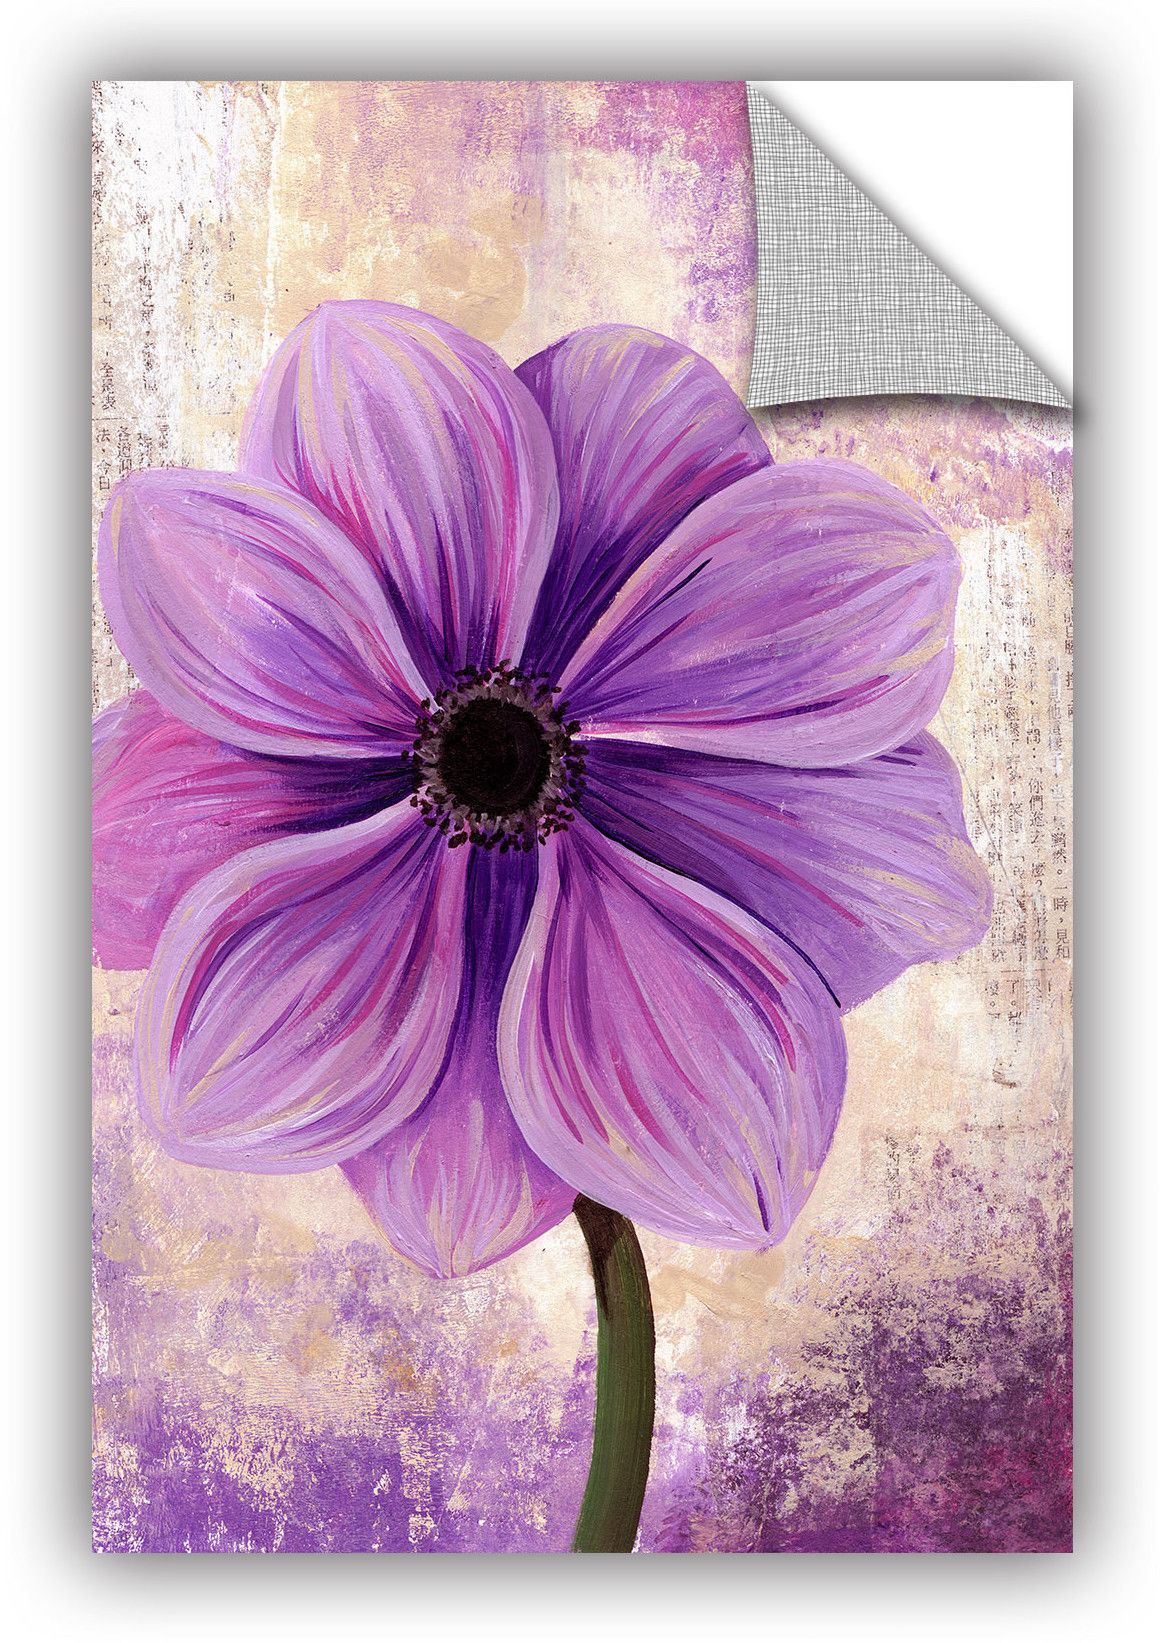 Tiffany budd anemone wall mural products pinterest wall murals